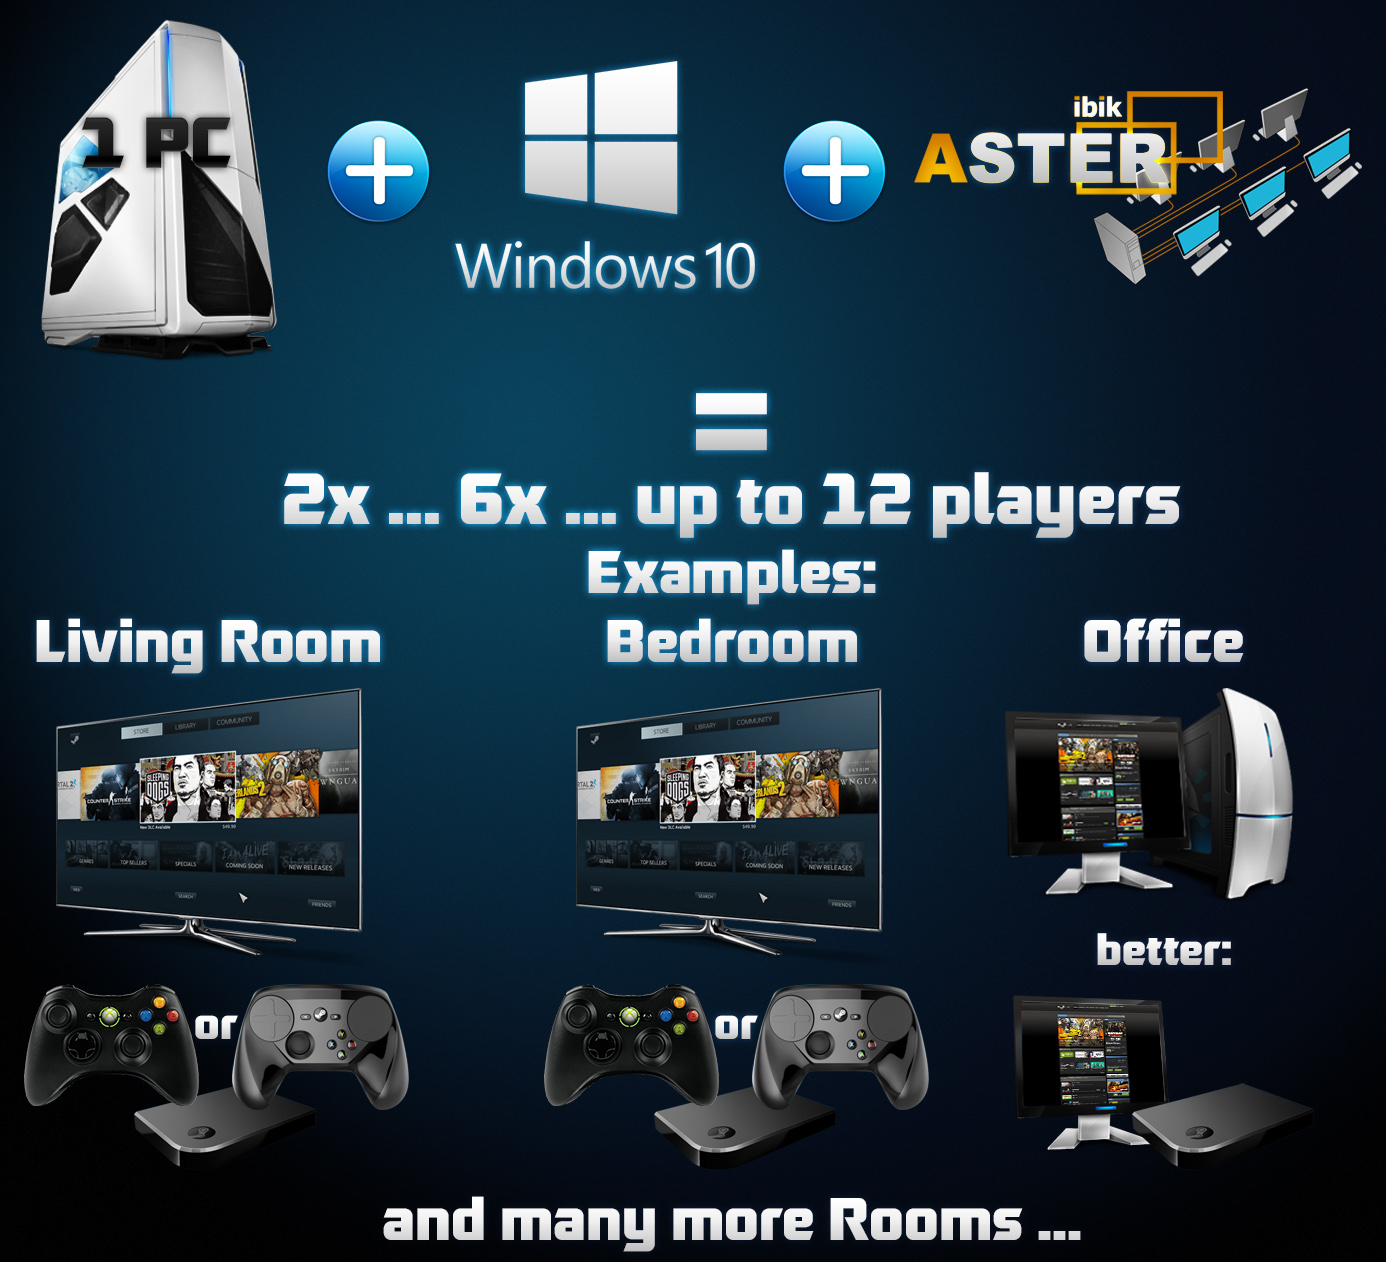 ASTER V7 Pro (up to 12 users, Windows 7/8/10, lifetime)